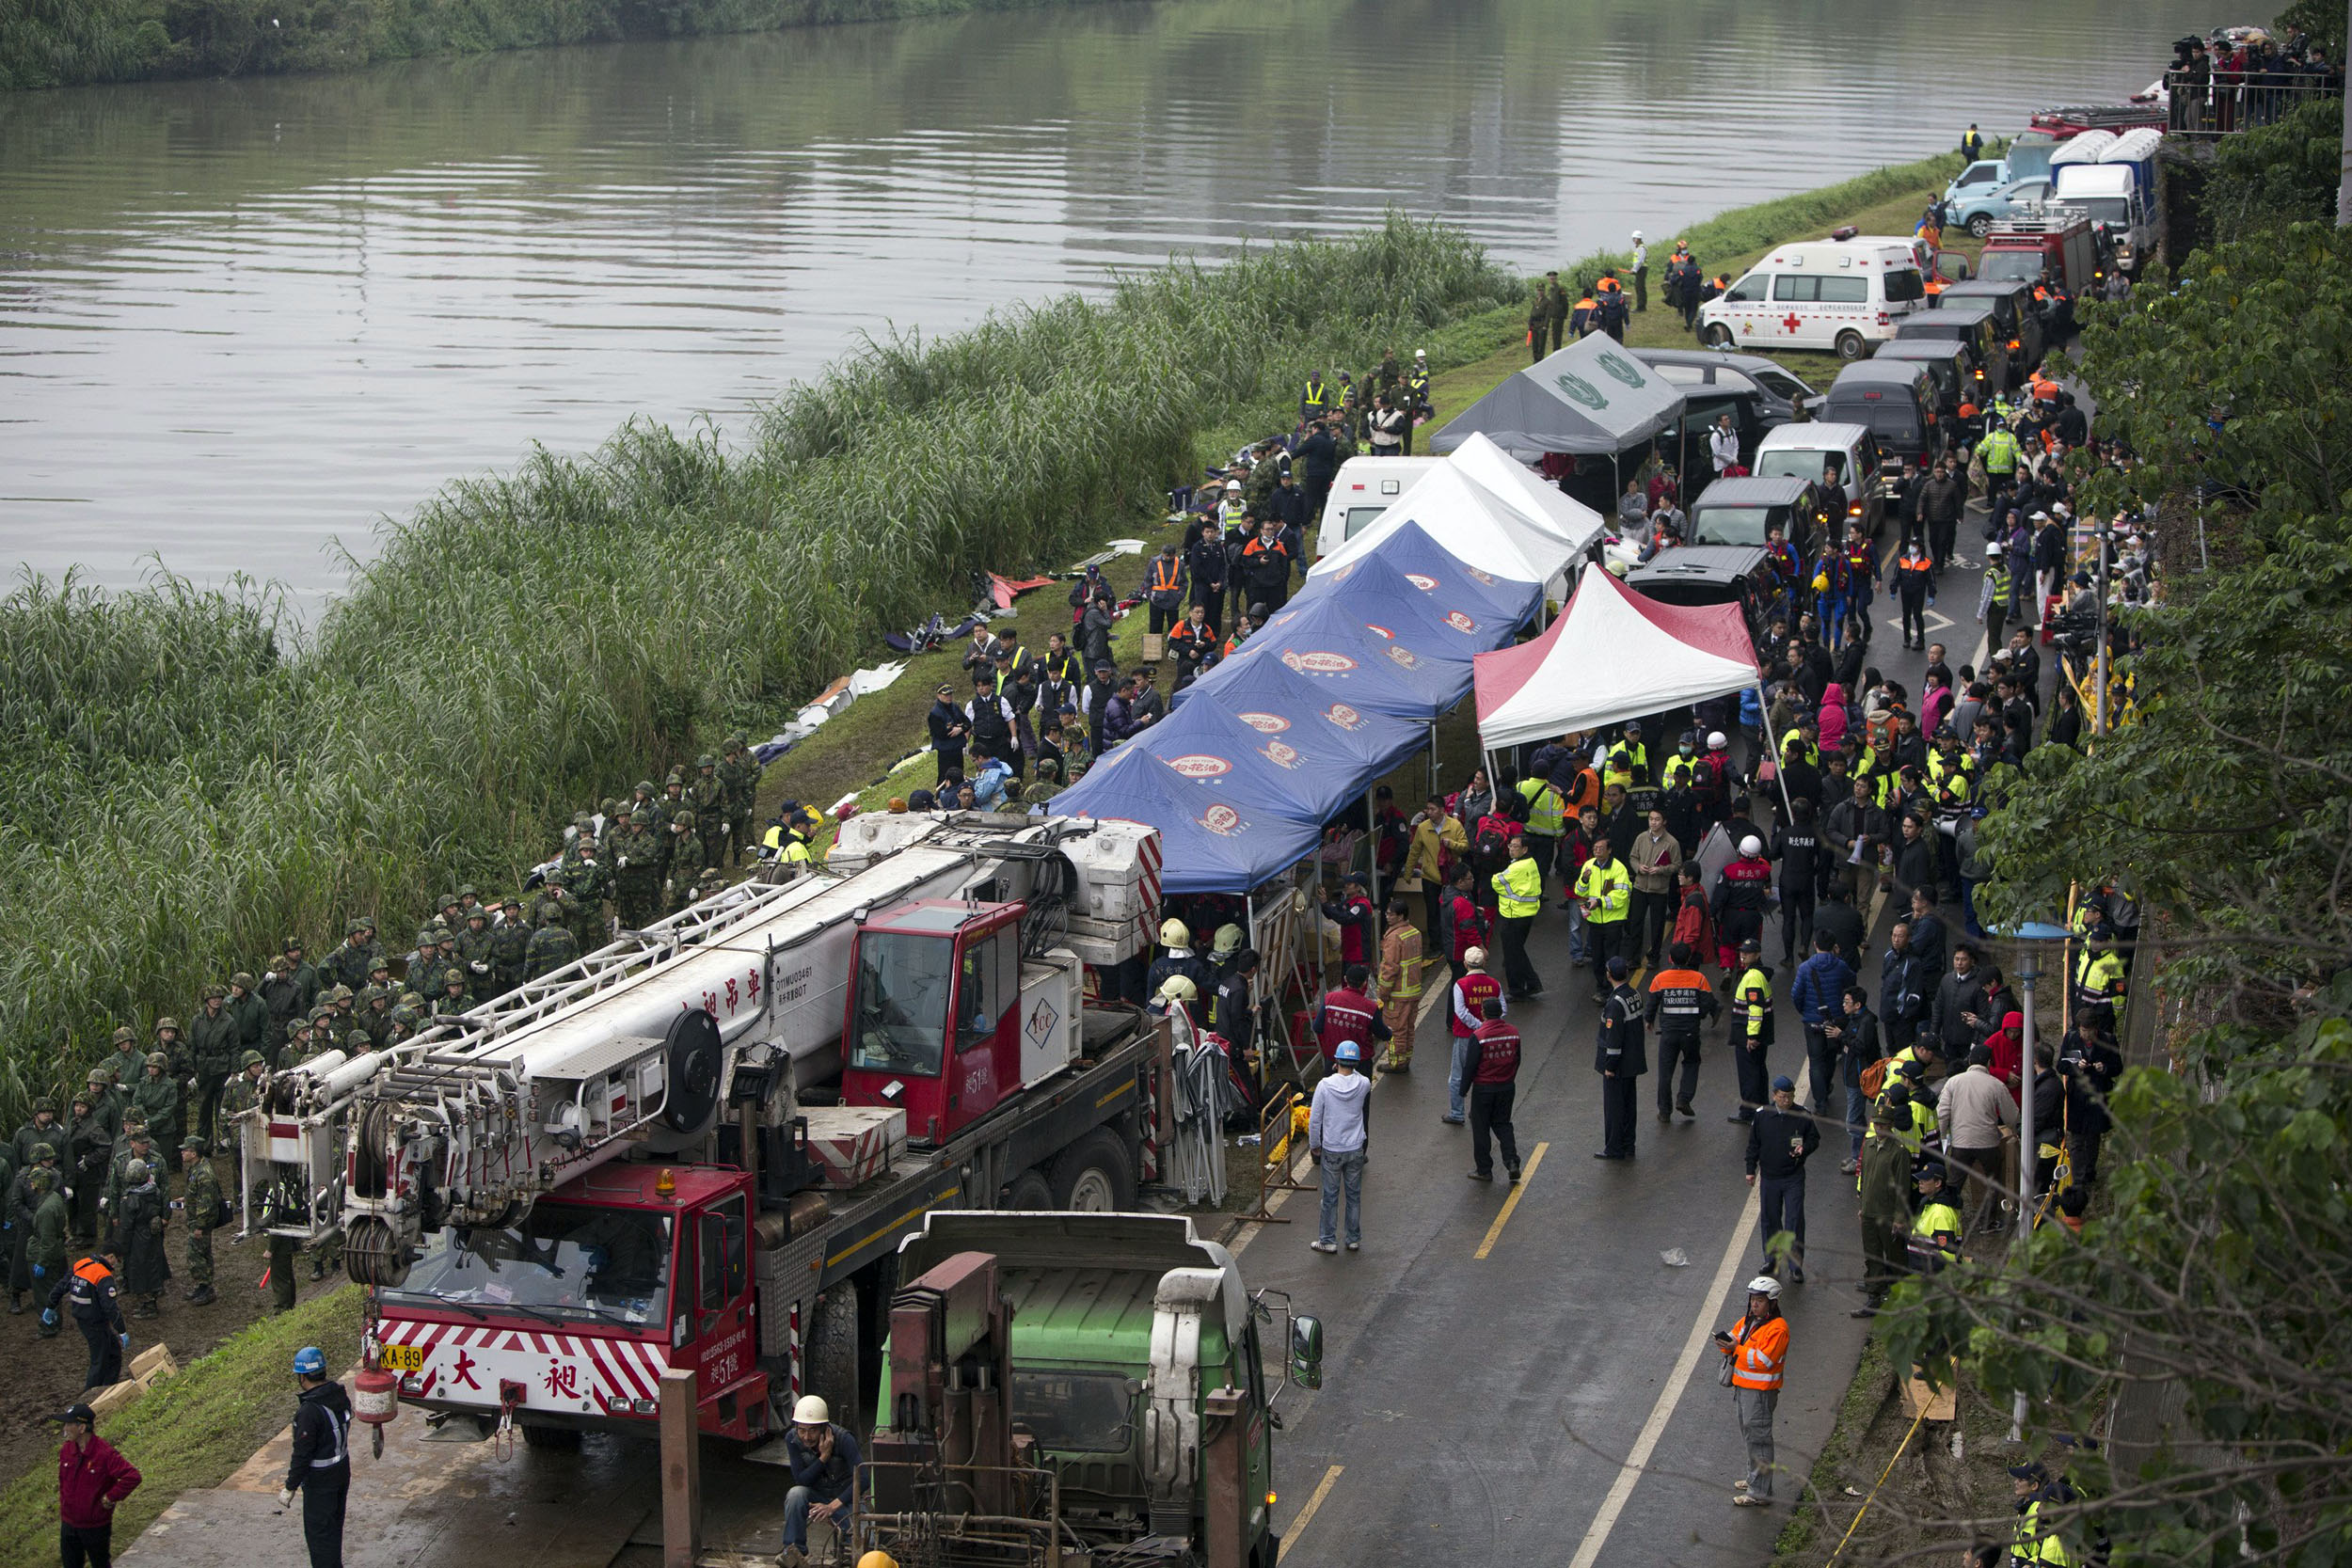 Rescue personnel, military and members of the media line up along the shore as rescue operations continue to free passengers from a TransAsia ATR 72-600 turboprop plane (not pictured) that crash-landed into a river (at L) outside Taiwan's capital Taipei in New Taipei City on Feb. 4, 2015.